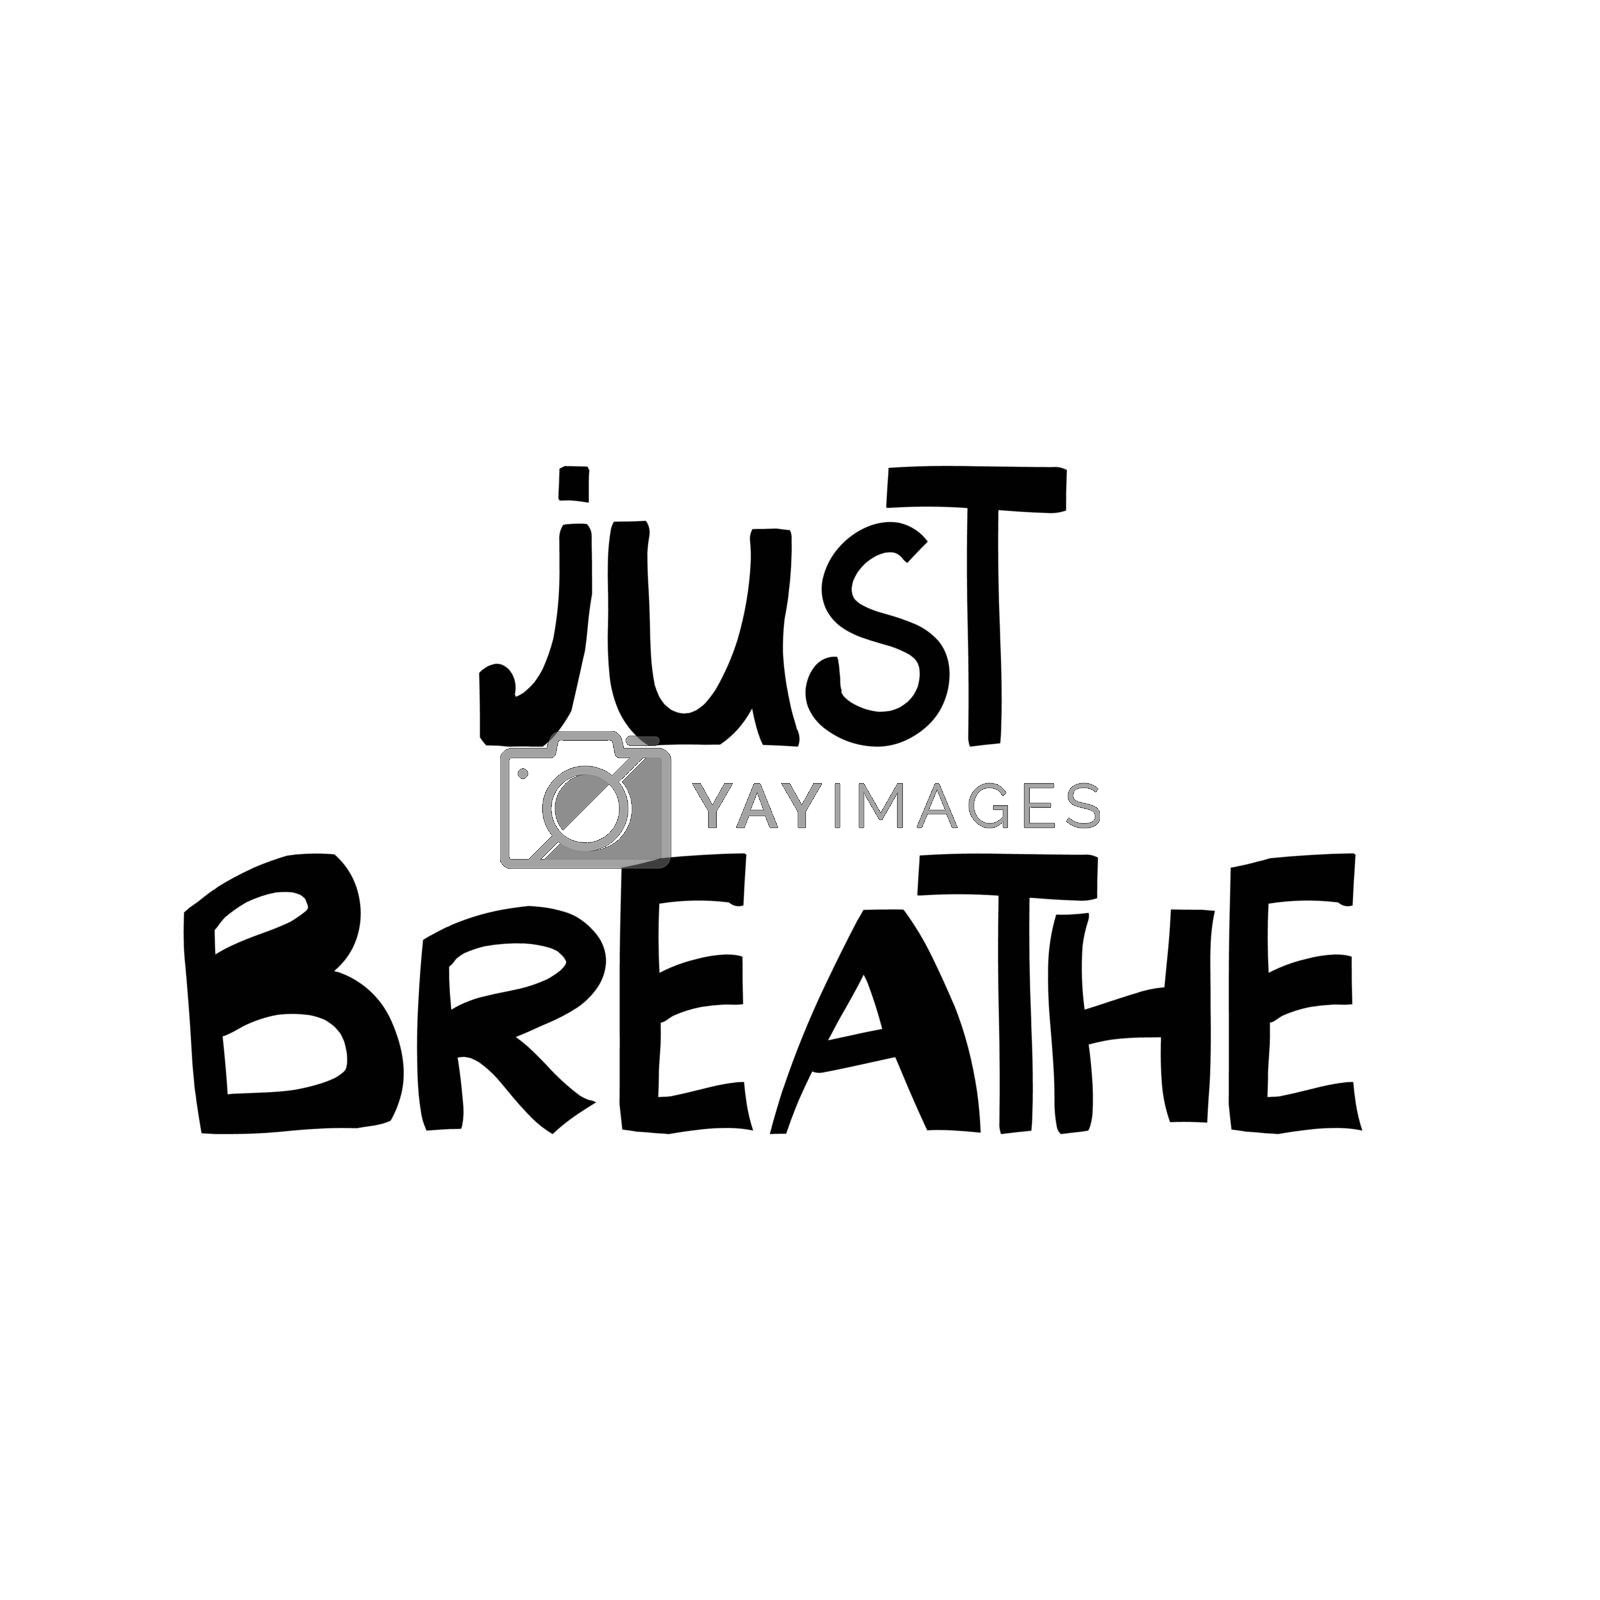 Just breathe. Motivation quote. Cute hand drawn lettering in modern scandinavian style. Isolated on white. Vector stock illustration.